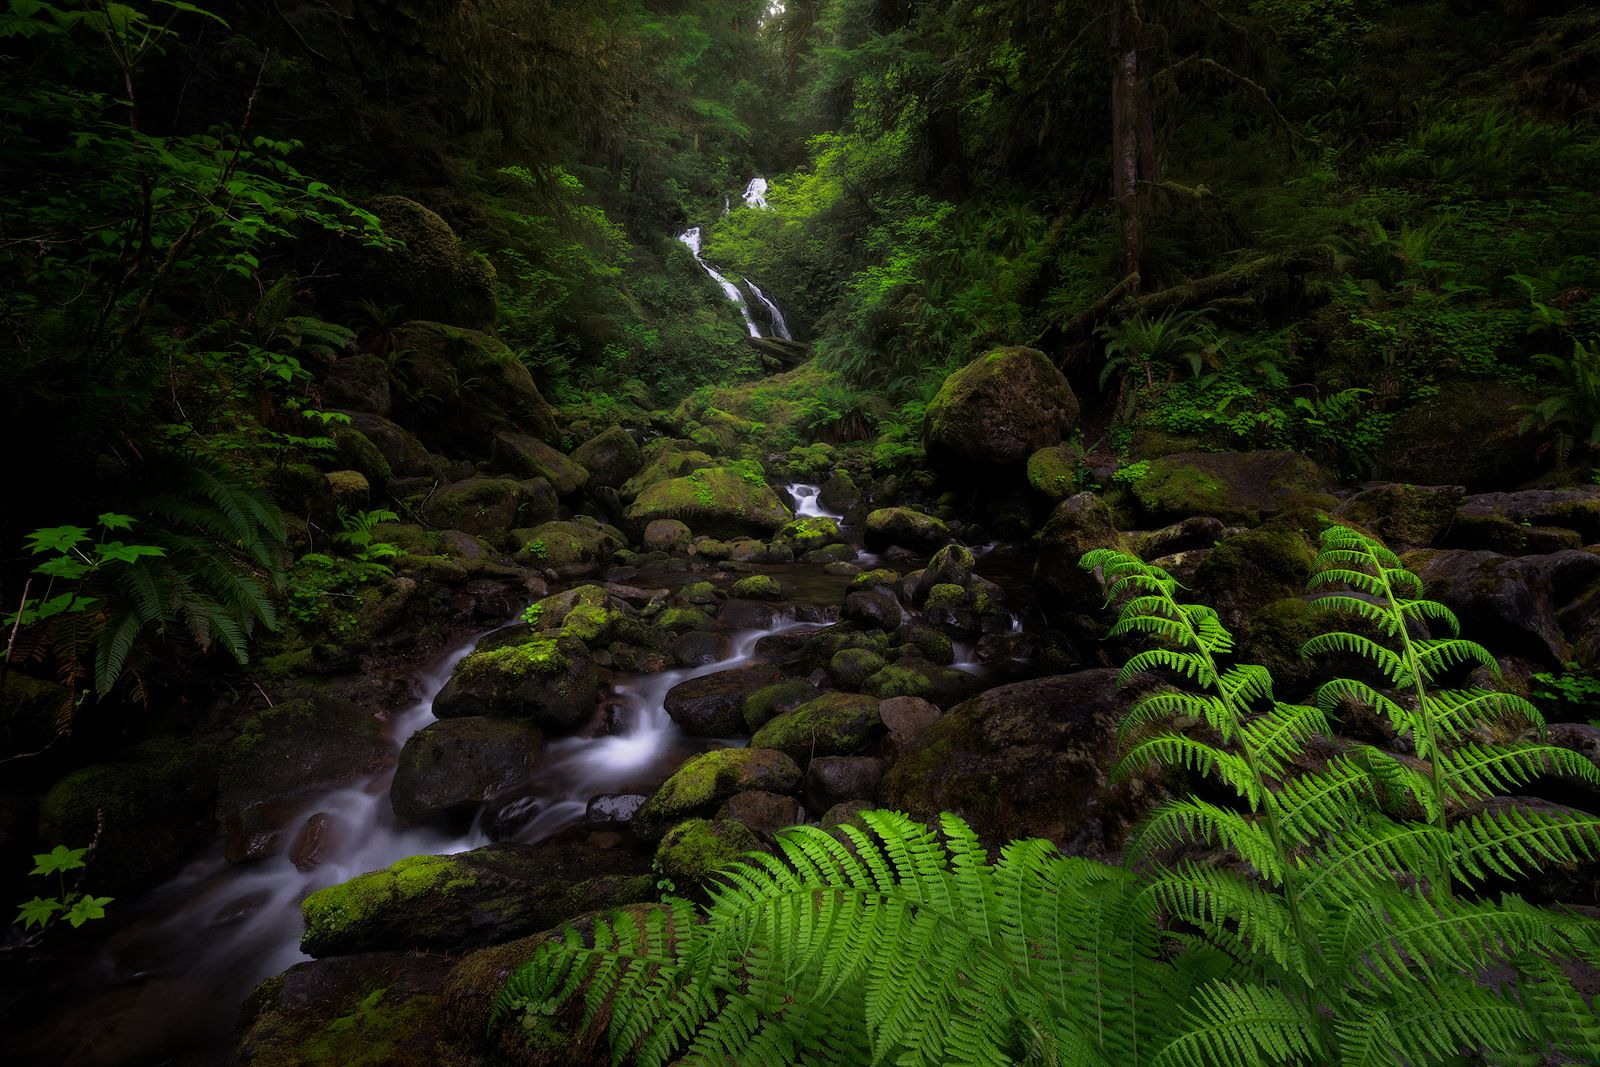 https://flic.kr/p/GoLvx8 | Bunch Creek | This waterfall shot was taken last spring in the Quinault Rainforest in Washington. The 2015 drought left the flow here quite low, hopefully it's bounced back somewhat in 2016.  Comments are appreciated!